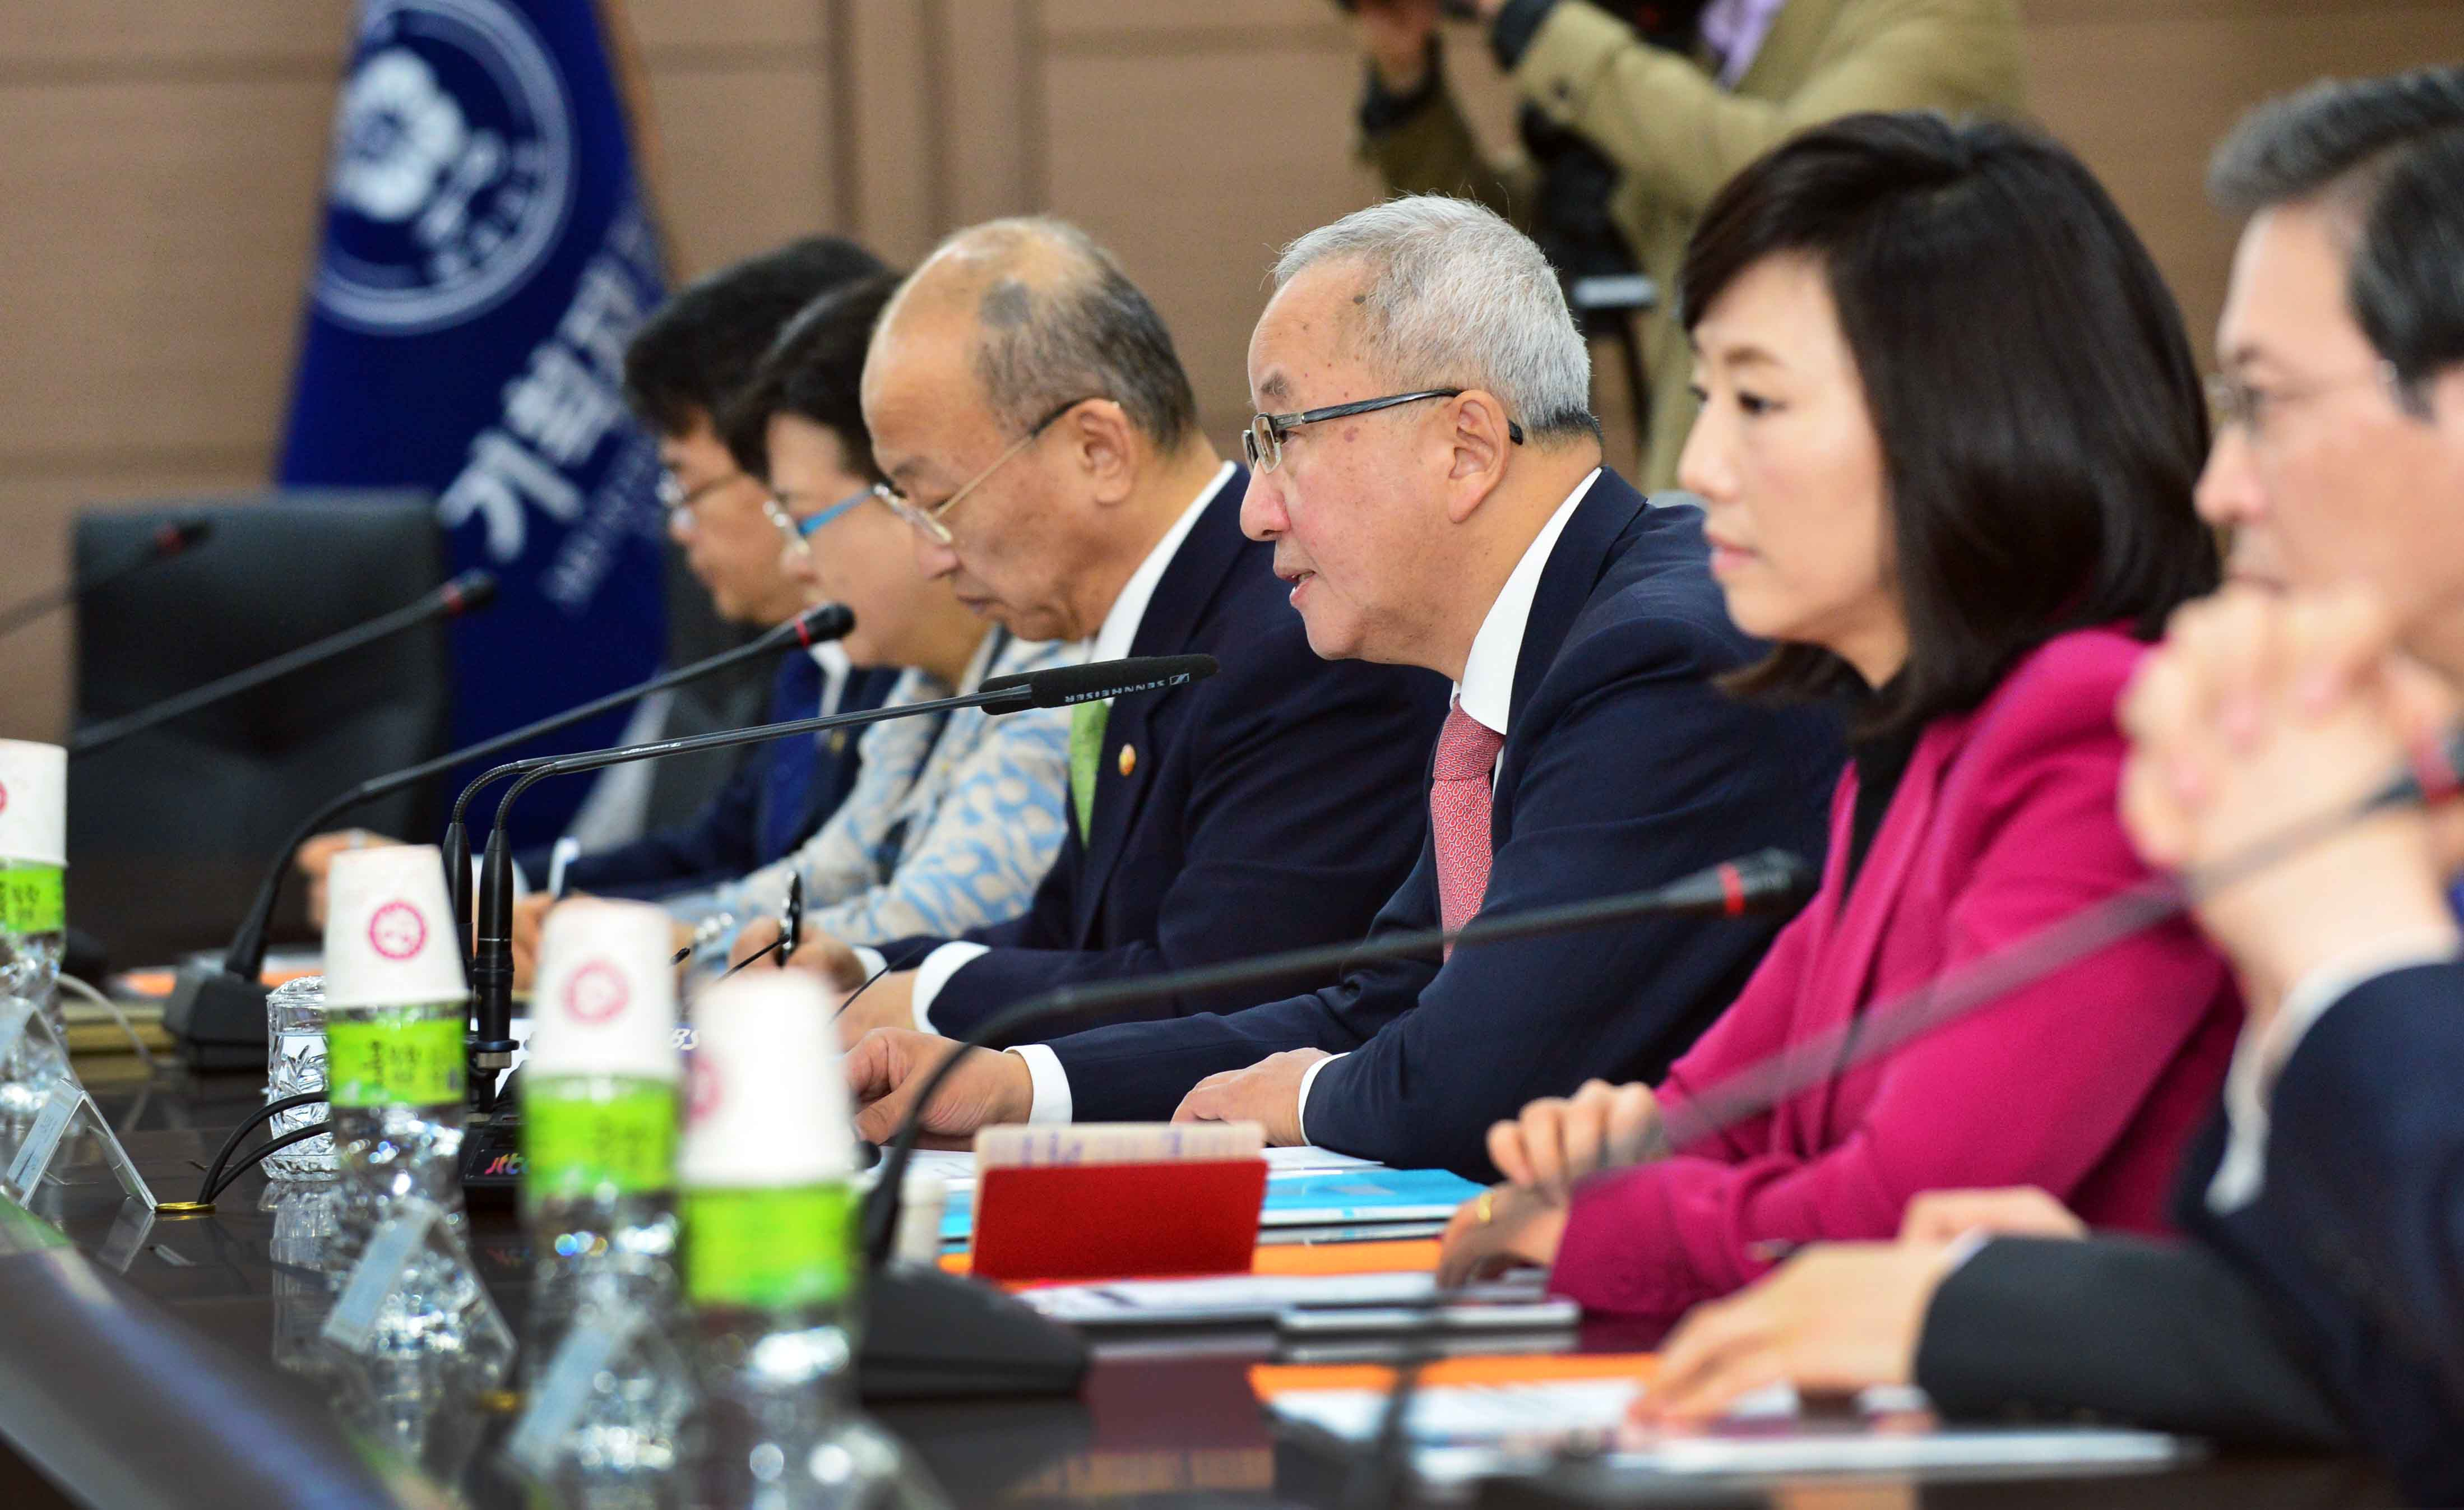 Deputy Prime Minister Hyun hosts the 11th Ministerial Meeting of the Economy